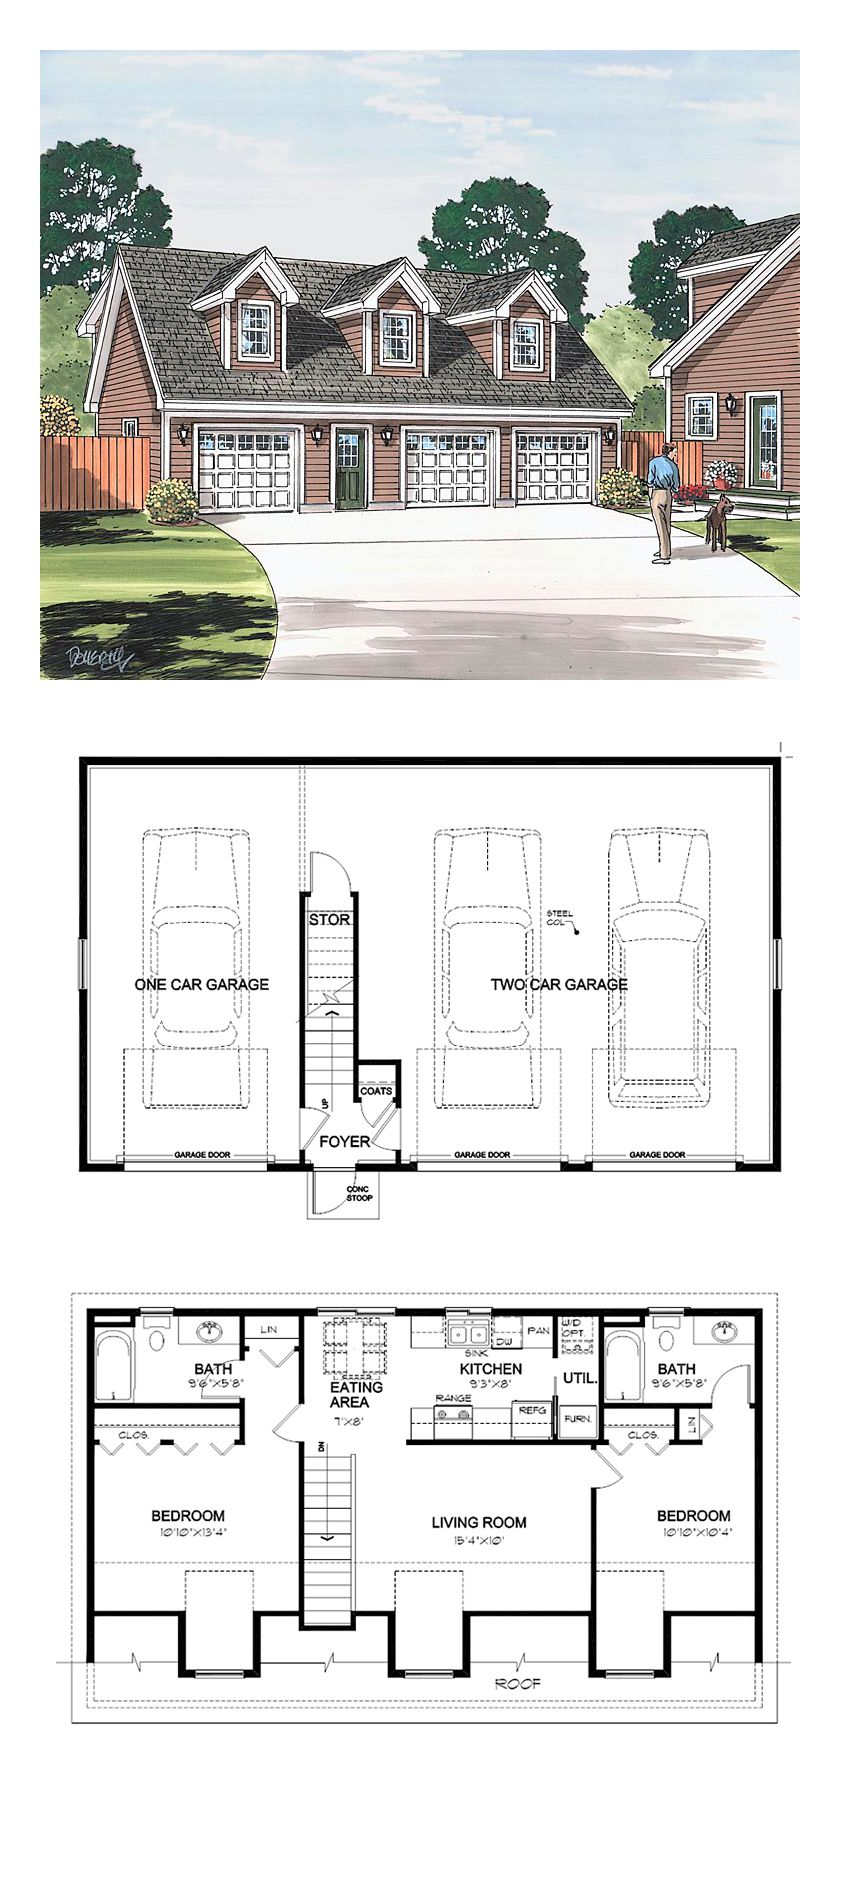 Garage apartment plan 30032 total living area 887 sq for Garage apartment plans 1 story